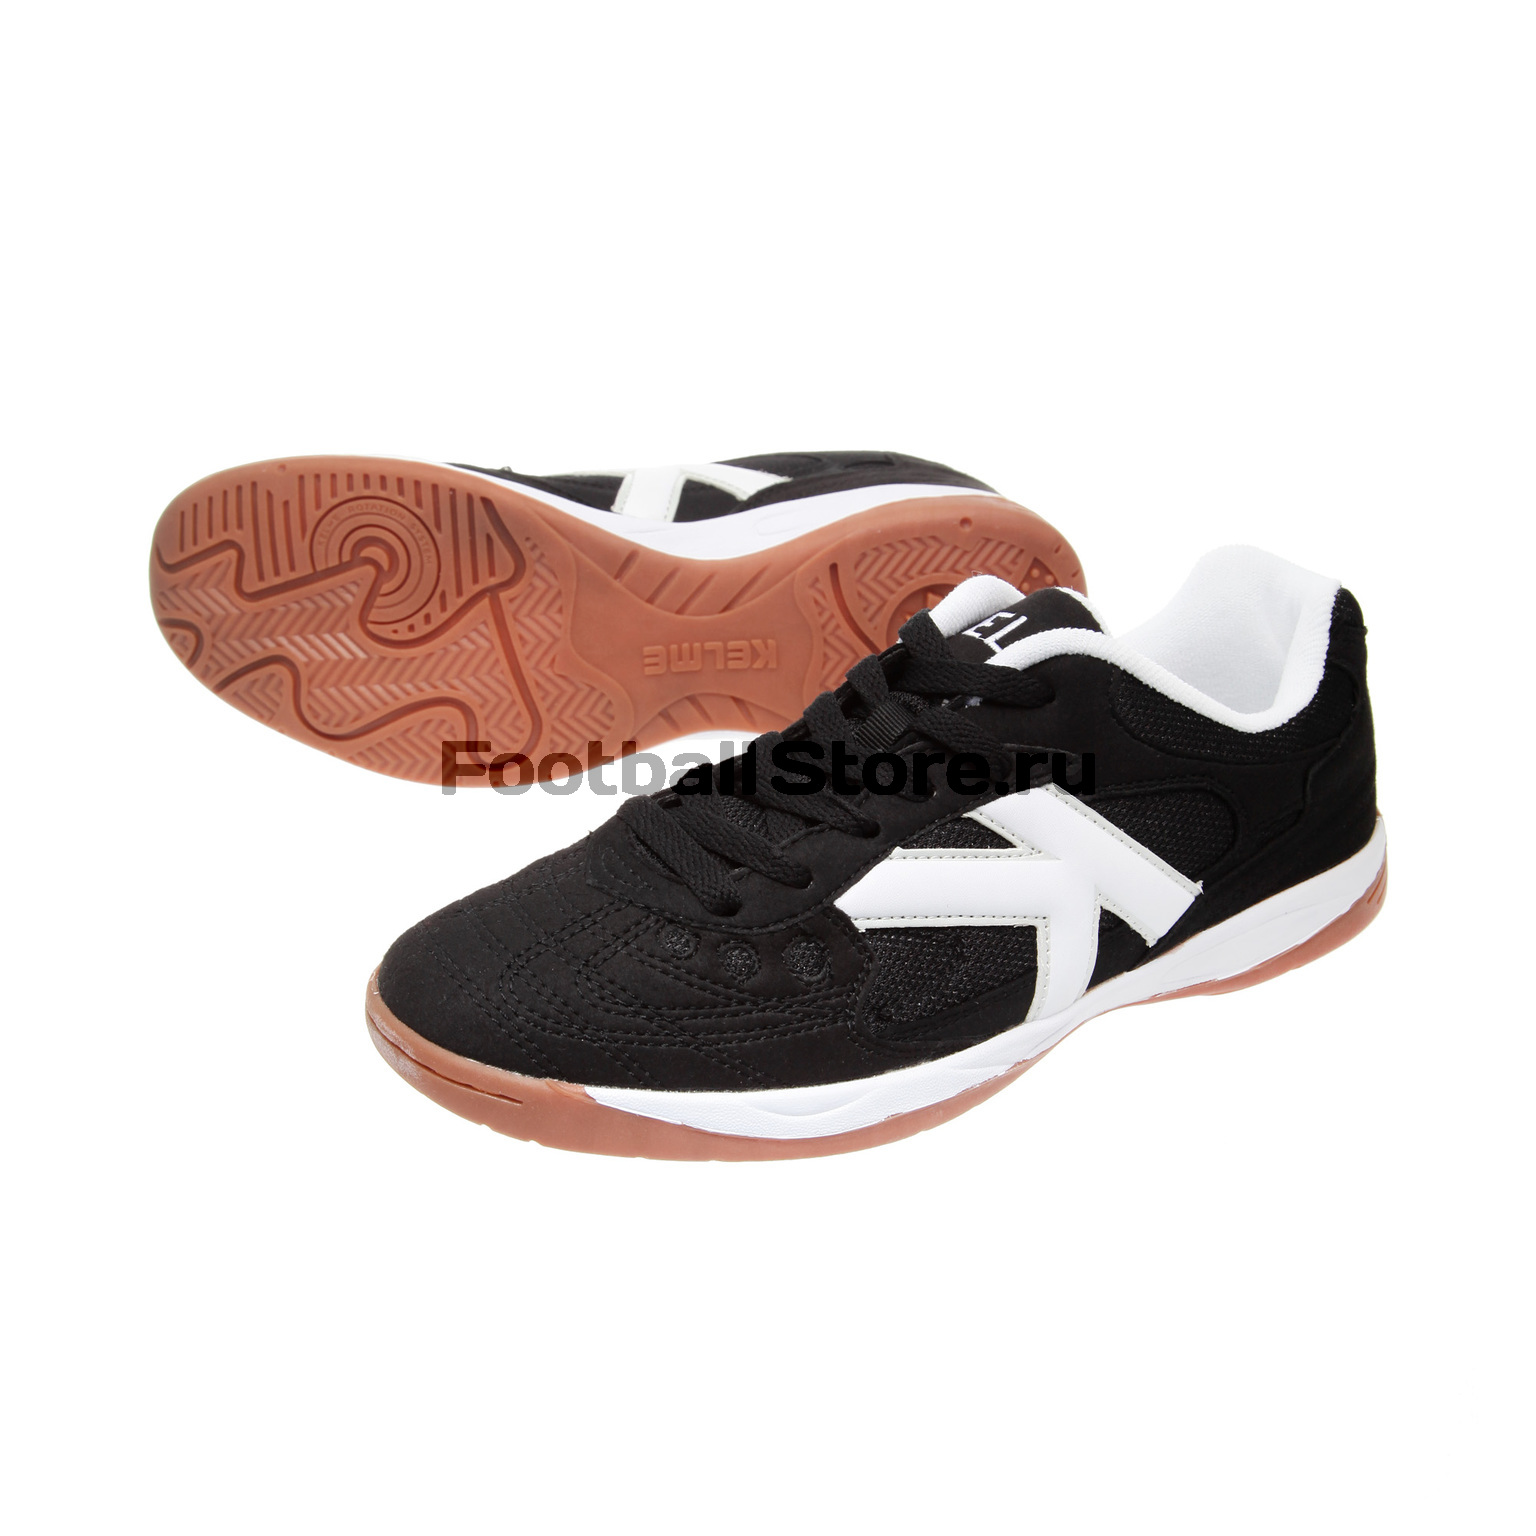 Футзалки Kelme Indoor Copa 55257-026 обувь для зала kelme обувь для зала kelme subito 5 0 55803 026